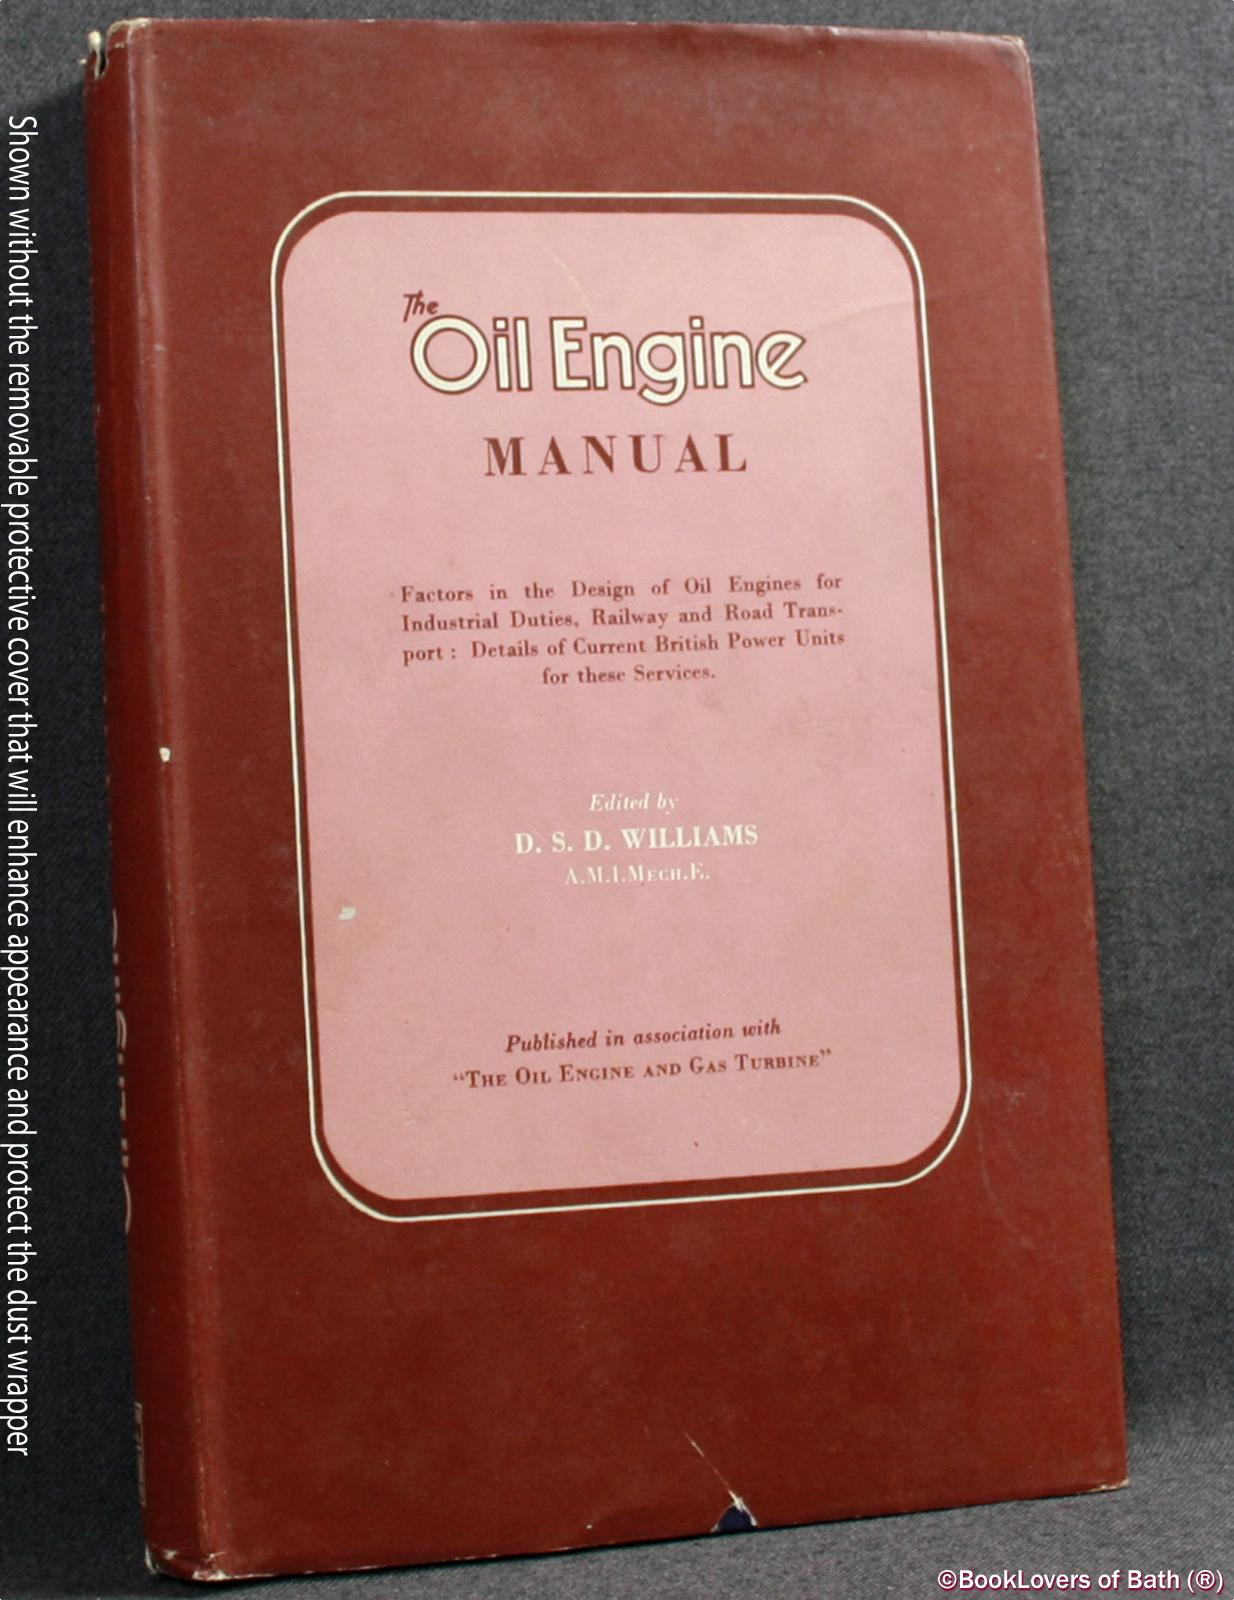 The Oil Engine Manual - D. S. D. [Denys Stephen Dodsley] Williams